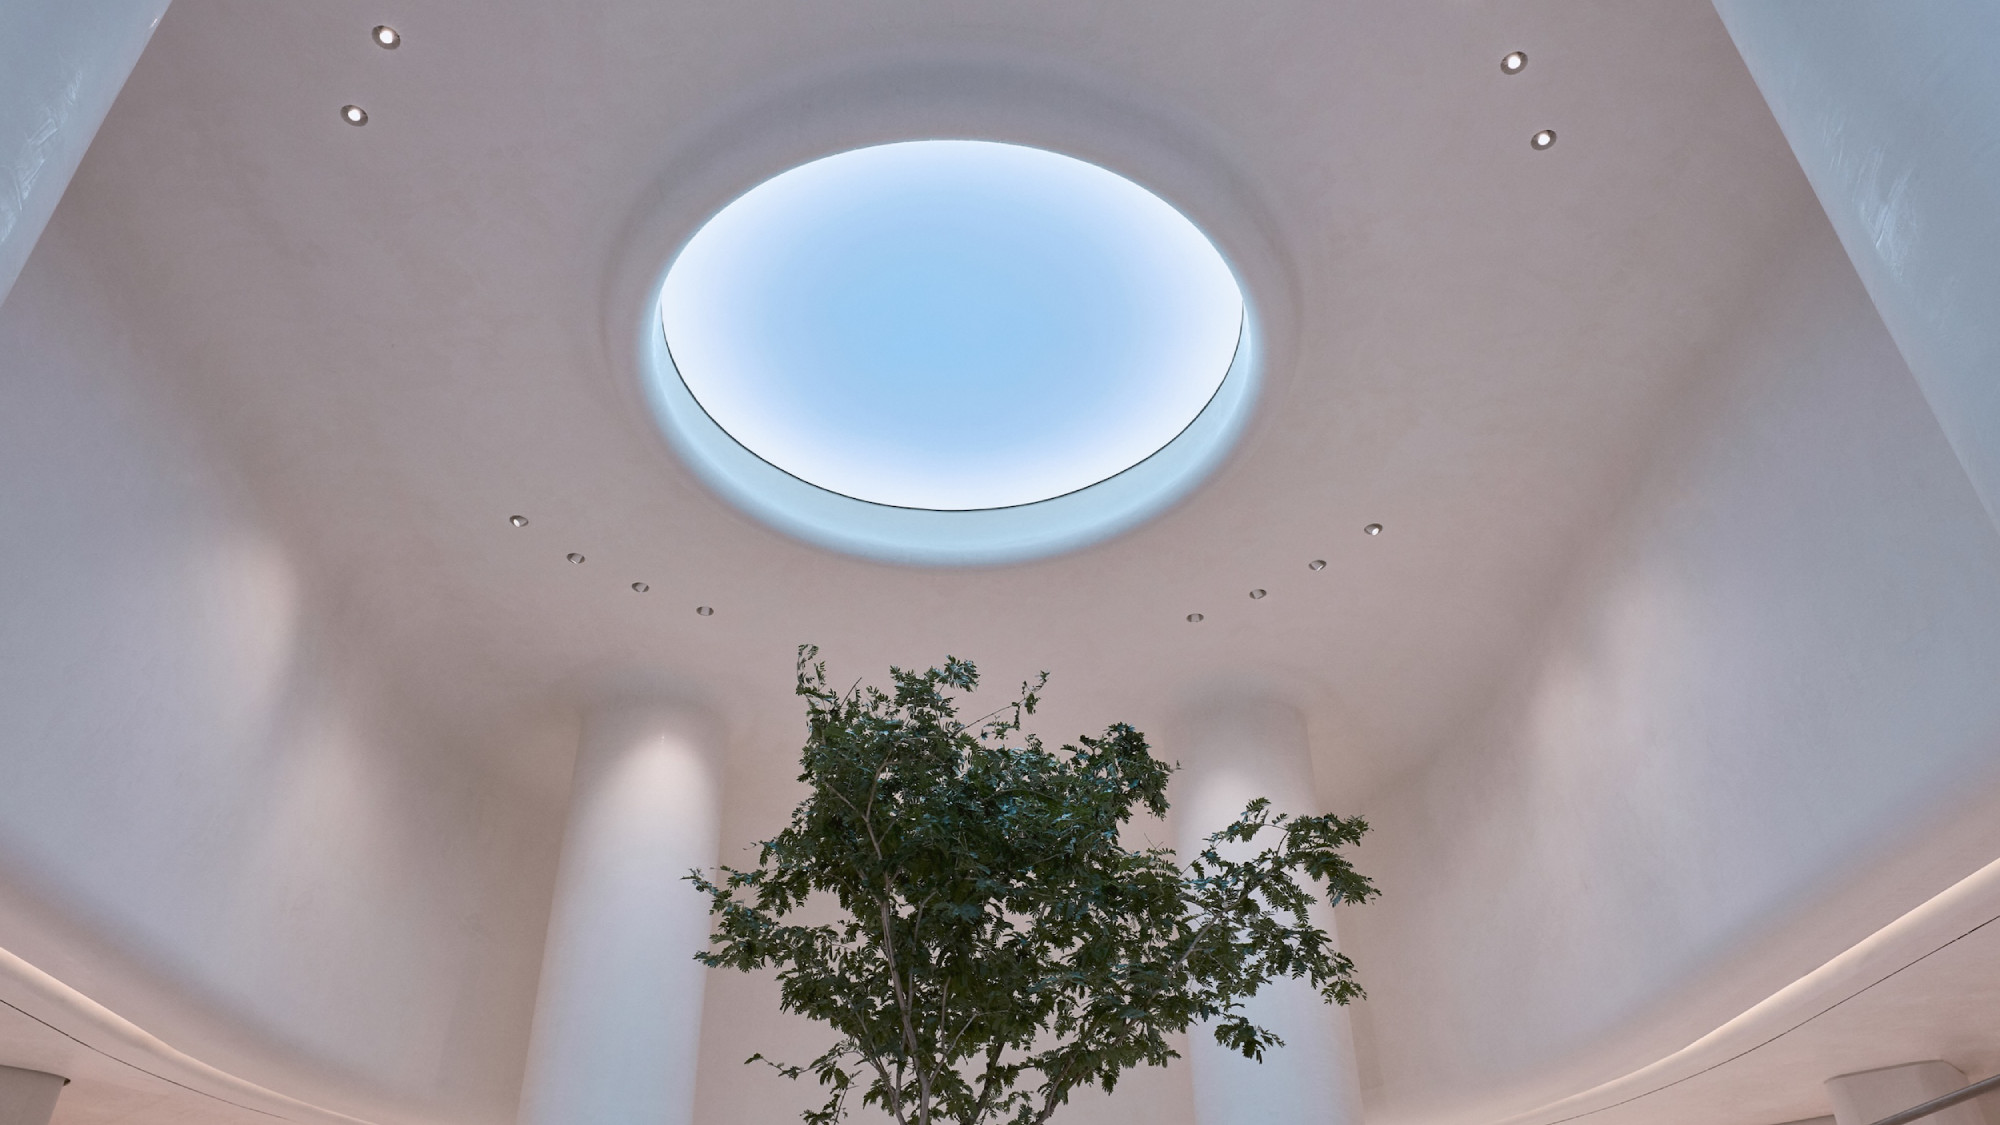 Light Cognitive's newest launch is an artificial skylight which creates the feeling of a window without the need to cut through a roof.